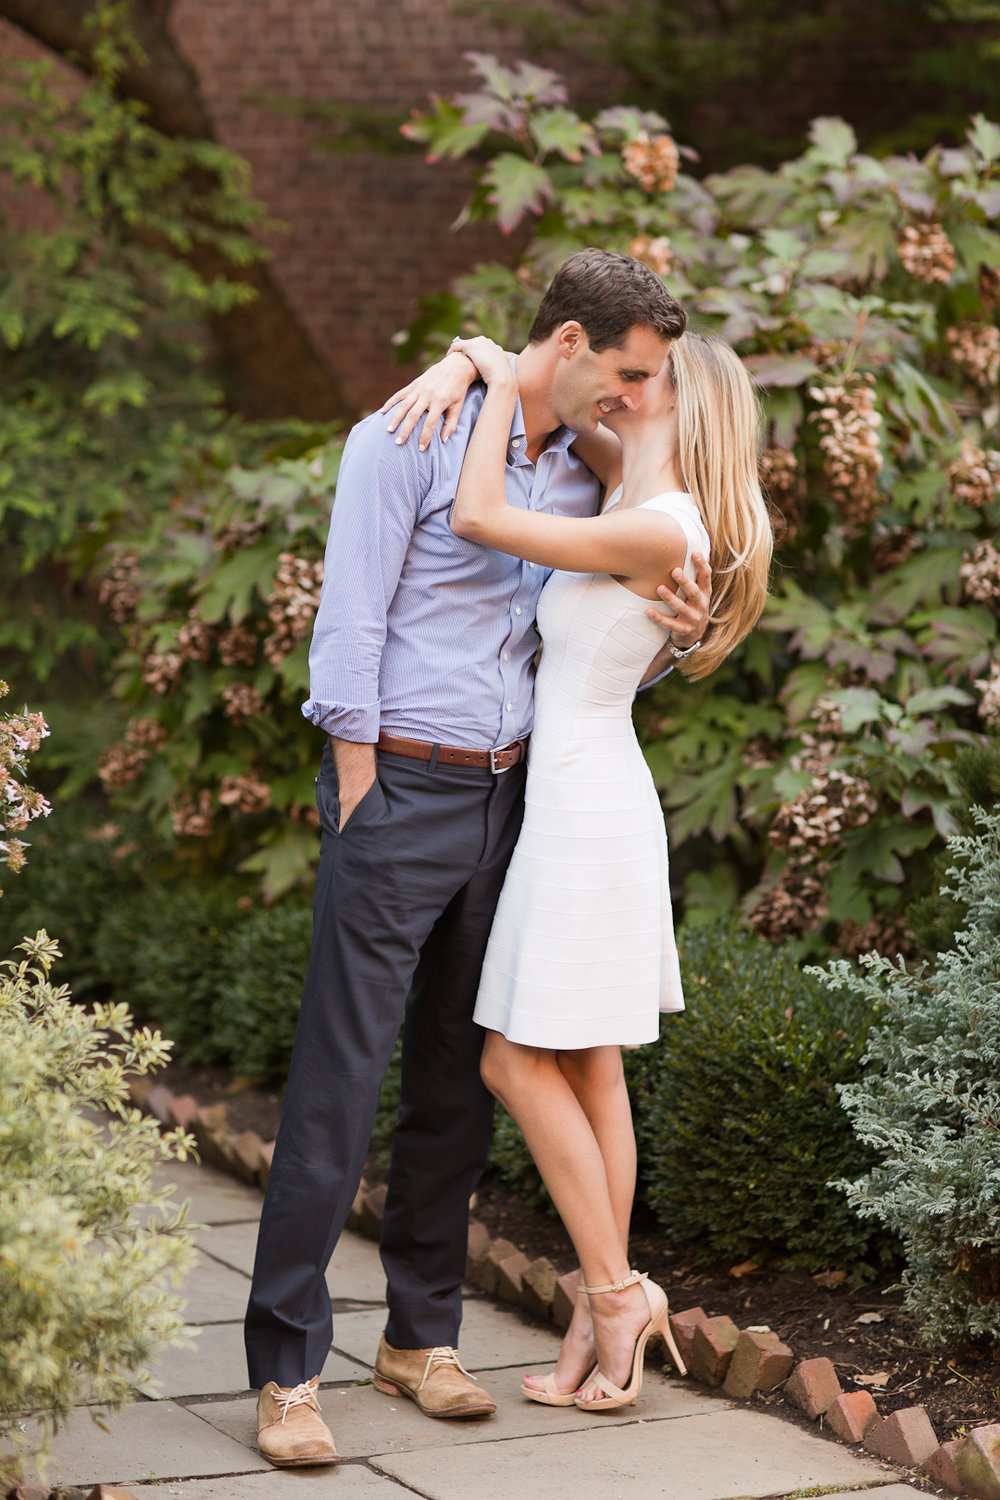 Melissa Kruse Photography - Daniece & Chris West Village Engagement Photos-102.jpg